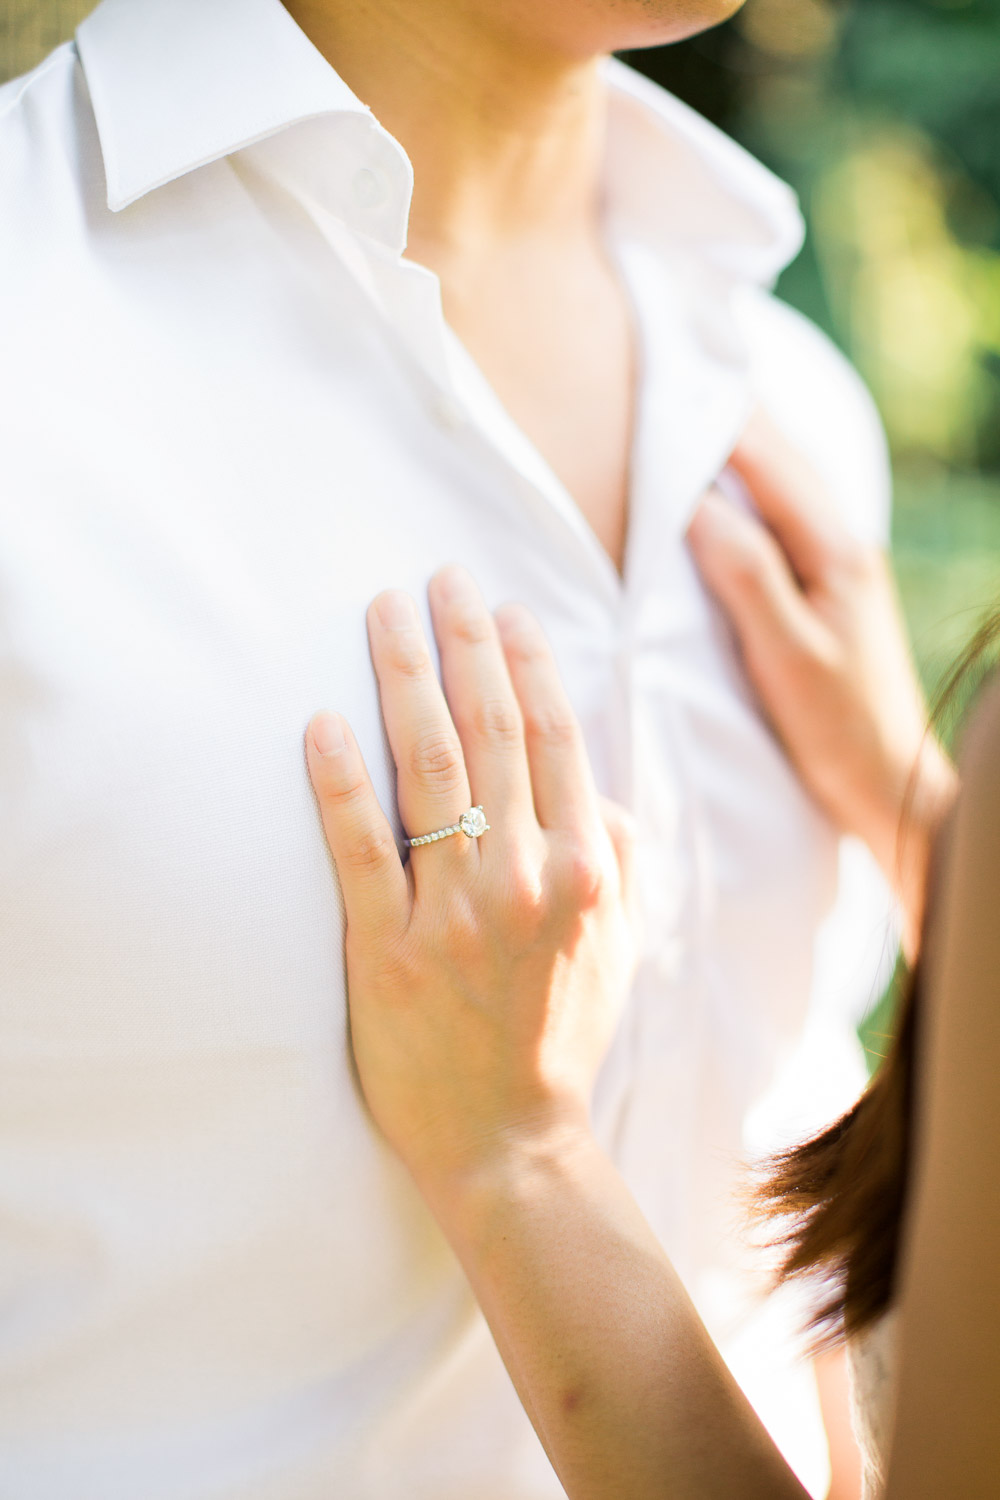 woman's hands rest on her fiance's chest